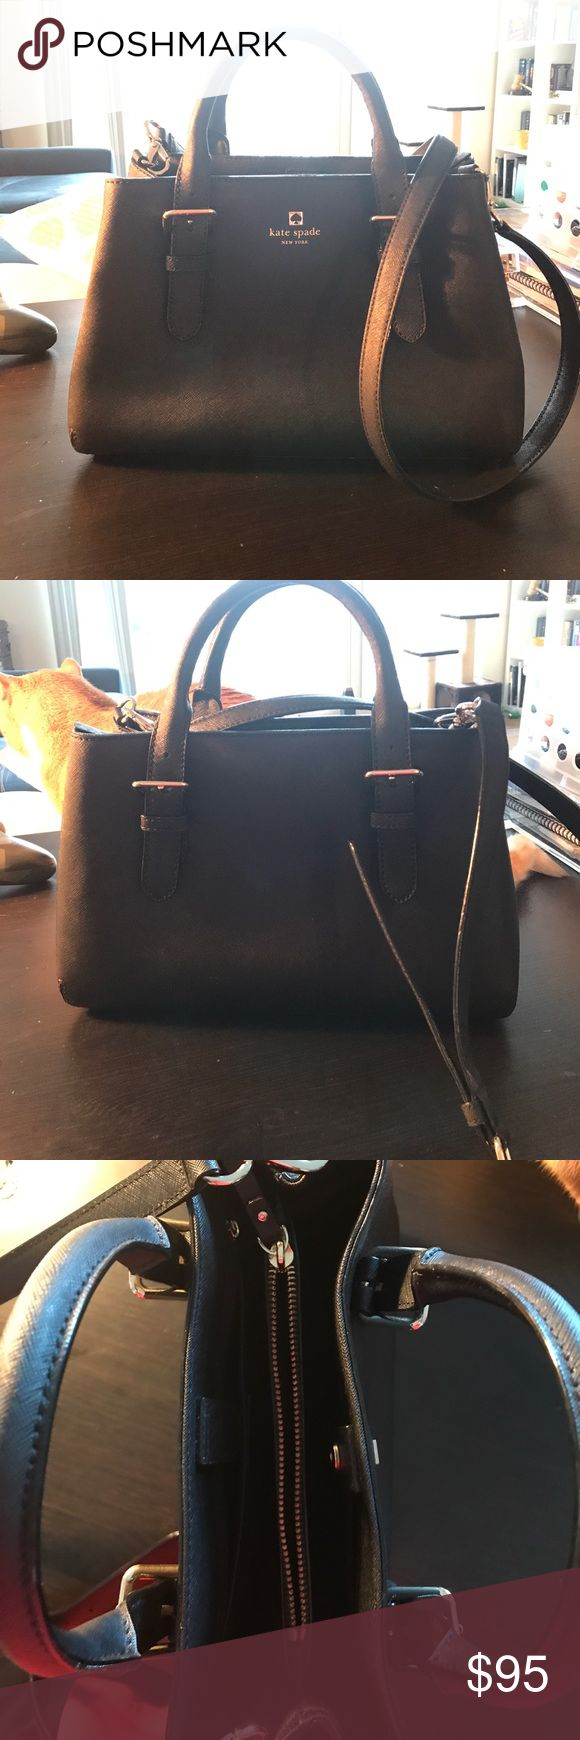 Kate Spade Black Crossover Purse Authentic Kate Spade black crossover purse. Inside: middle zipper pocket, side zipper pocket, and three other pockets. Magnetic closure. Only used a handful of times - still in like new condition! kate spade Bags Crossbody Bags